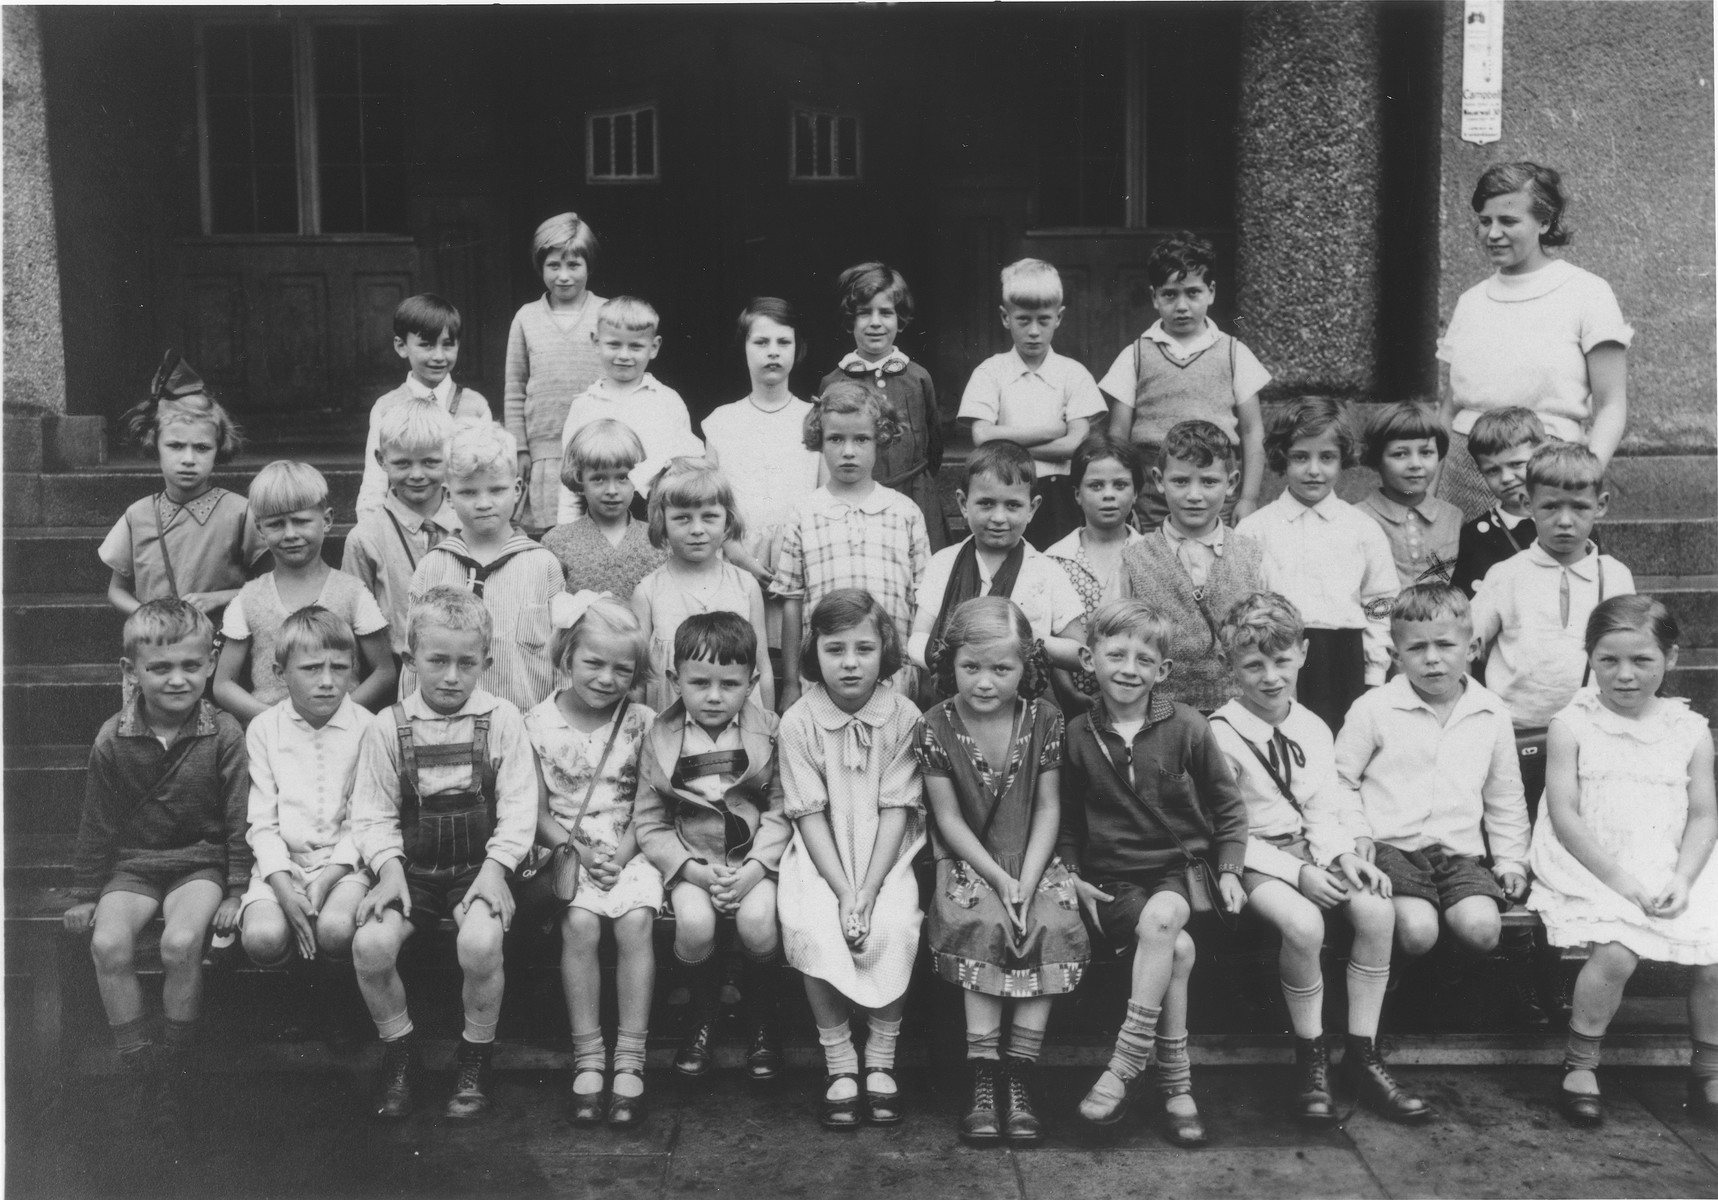 Group portrait of the first grade class of a Hamburg elementary school.    Eva Rosenbaum is standing in the back row, third from the right.